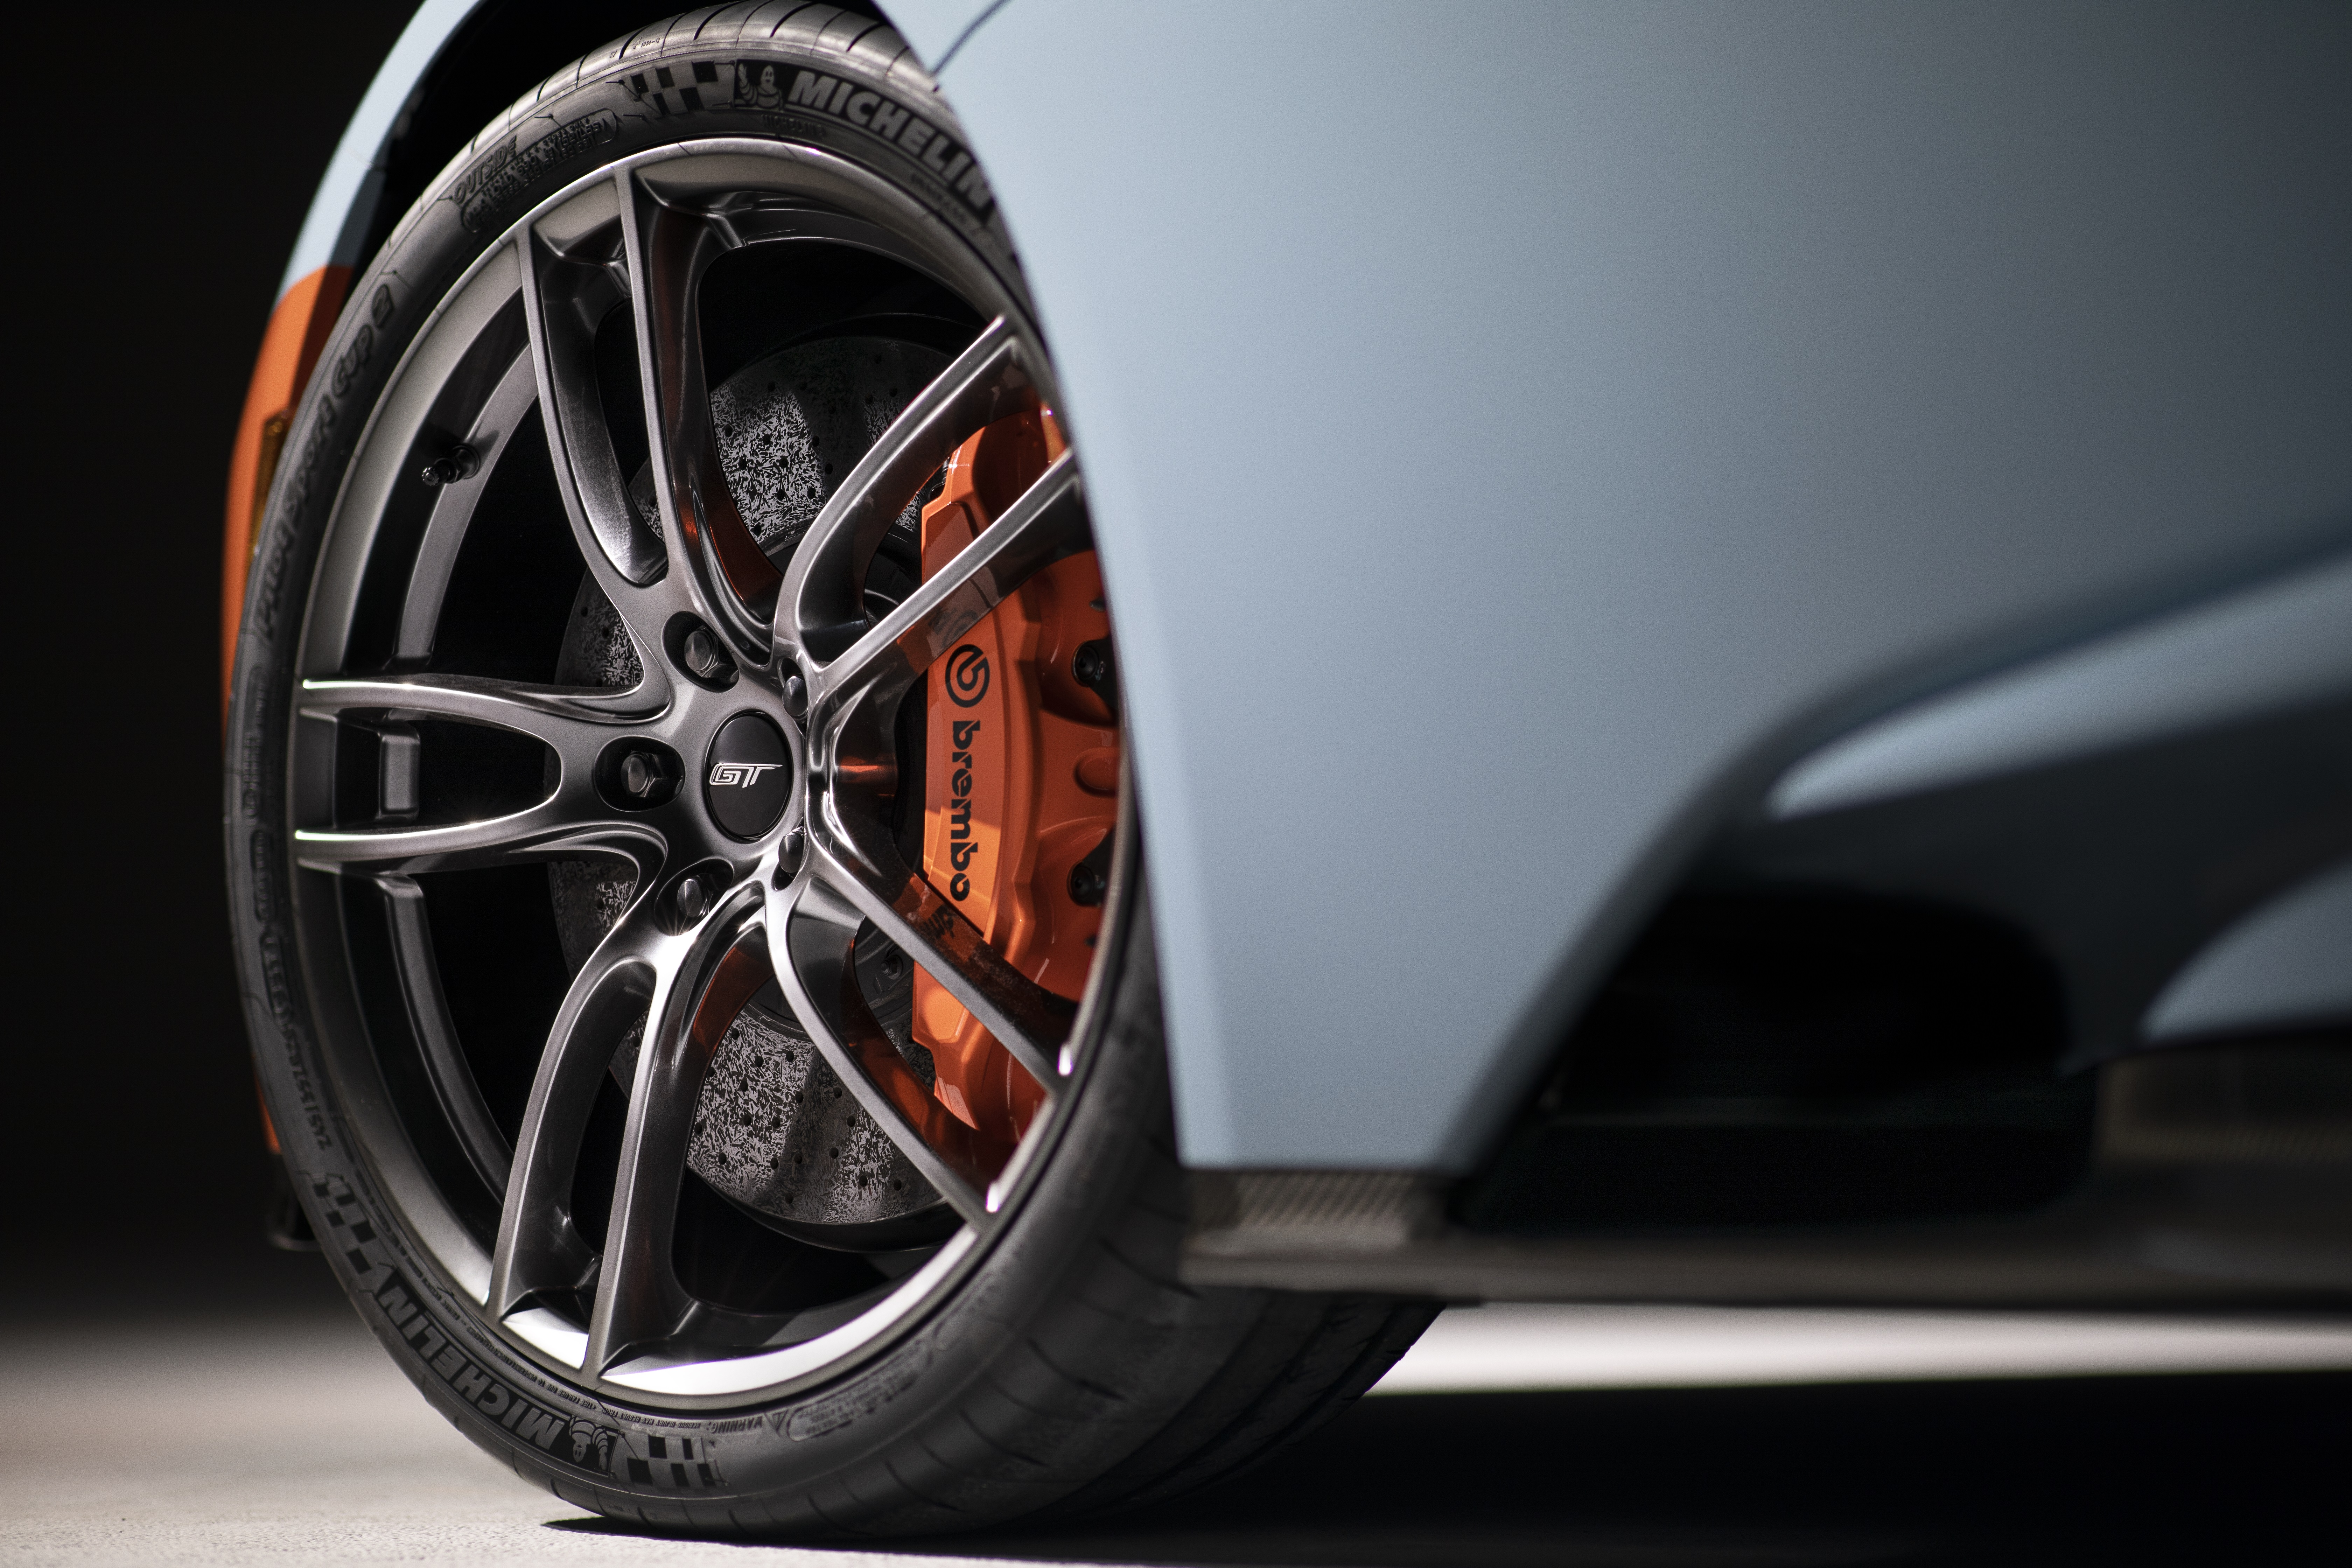 2019 Ford GT Heritage Edition Wheel